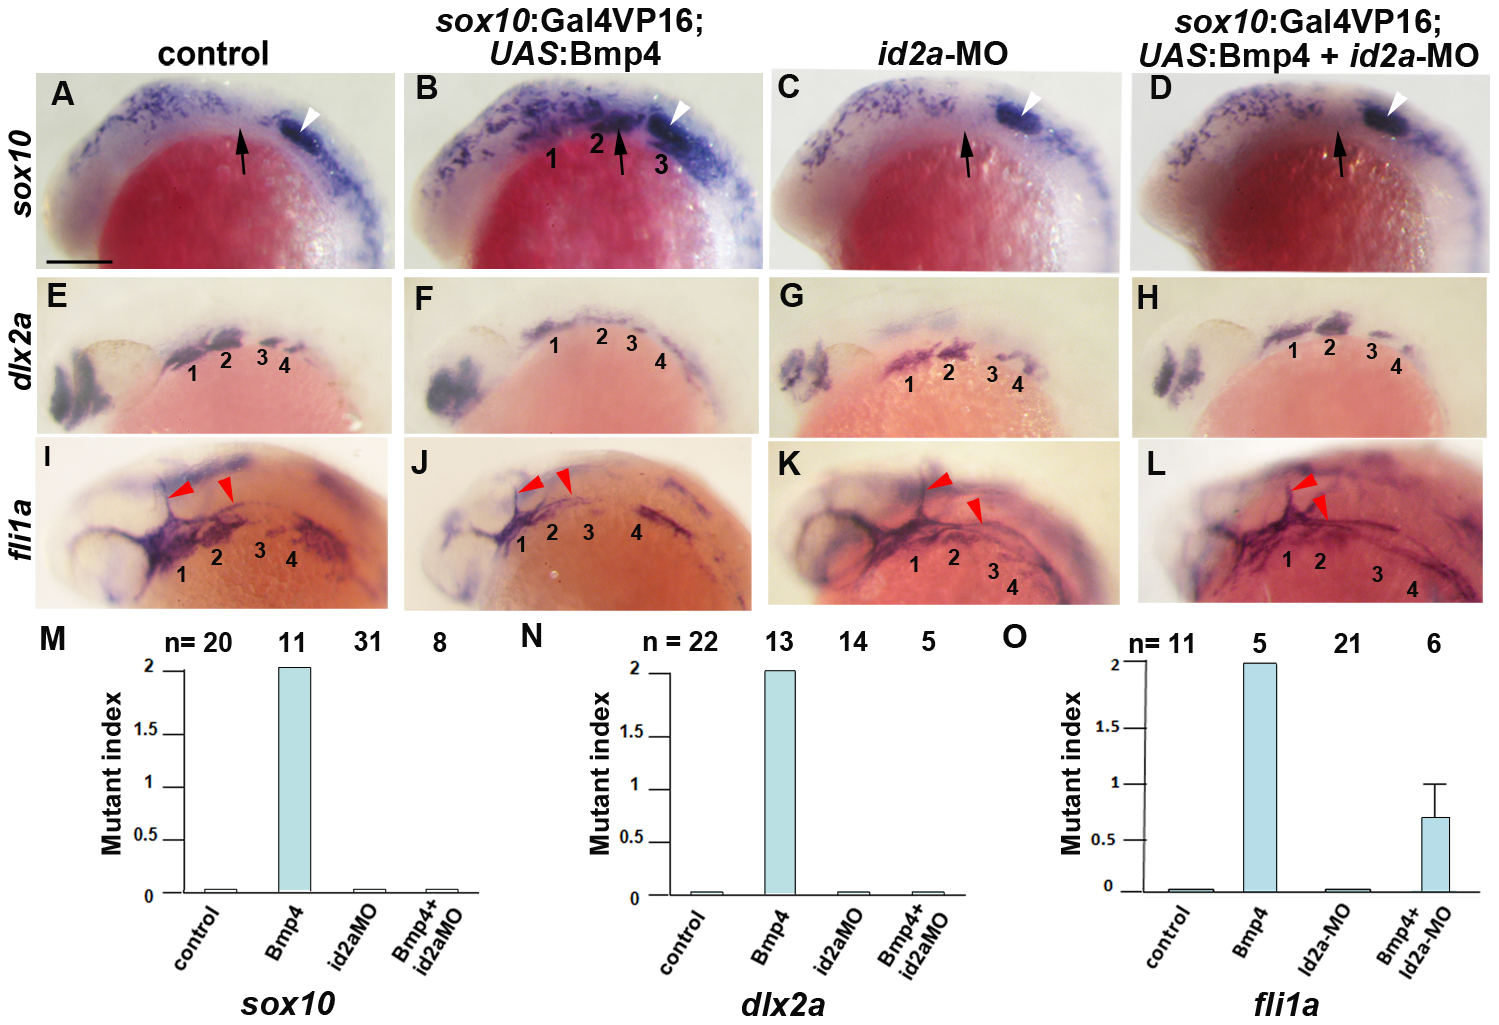 Reduction of Id2a rescues the ectomesenchyme defects caused by Bmp4 misexpression.